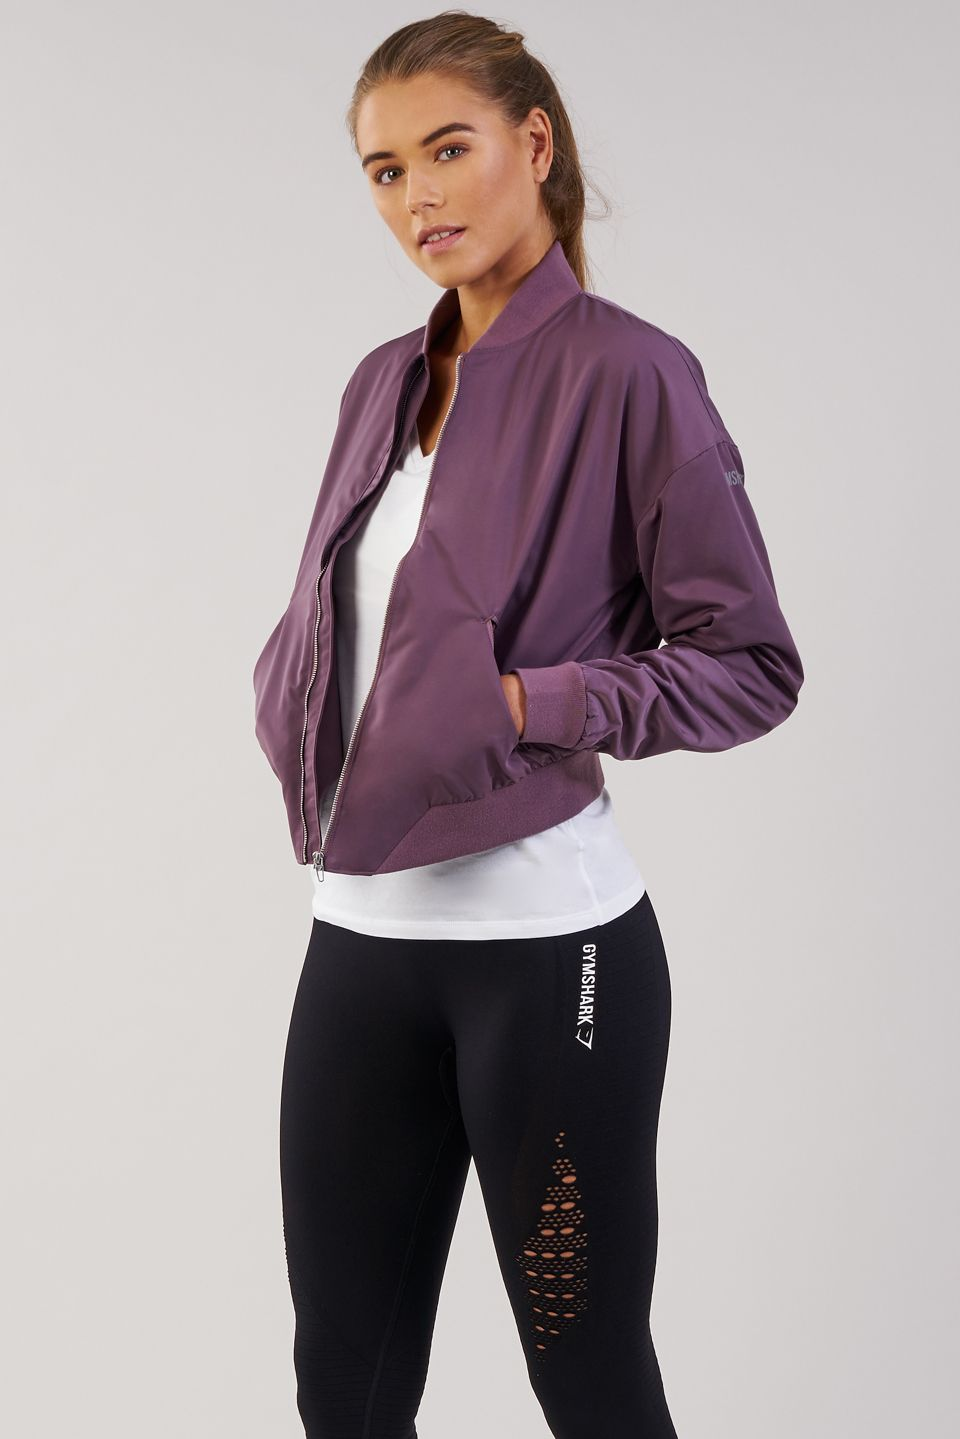 Accented With Ribbed Collar Cuffs And Hem Quality Comfort Is Guaranteed With The Gymshark Lo Bomber Jacket Comi Fitness Fashion Fashion Purple Bomber Jacket [ 1439 x 960 Pixel ]